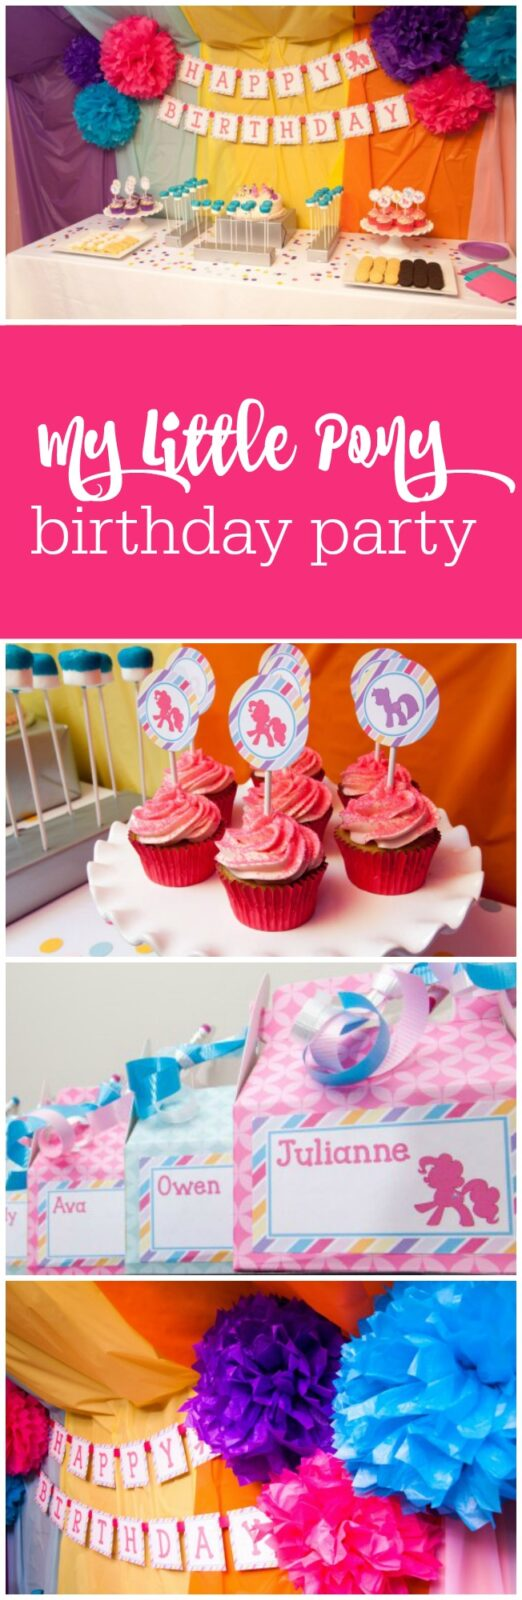 Darling My Little Pony birthday party by Tickled Peach Studio featured on The Party Teacher